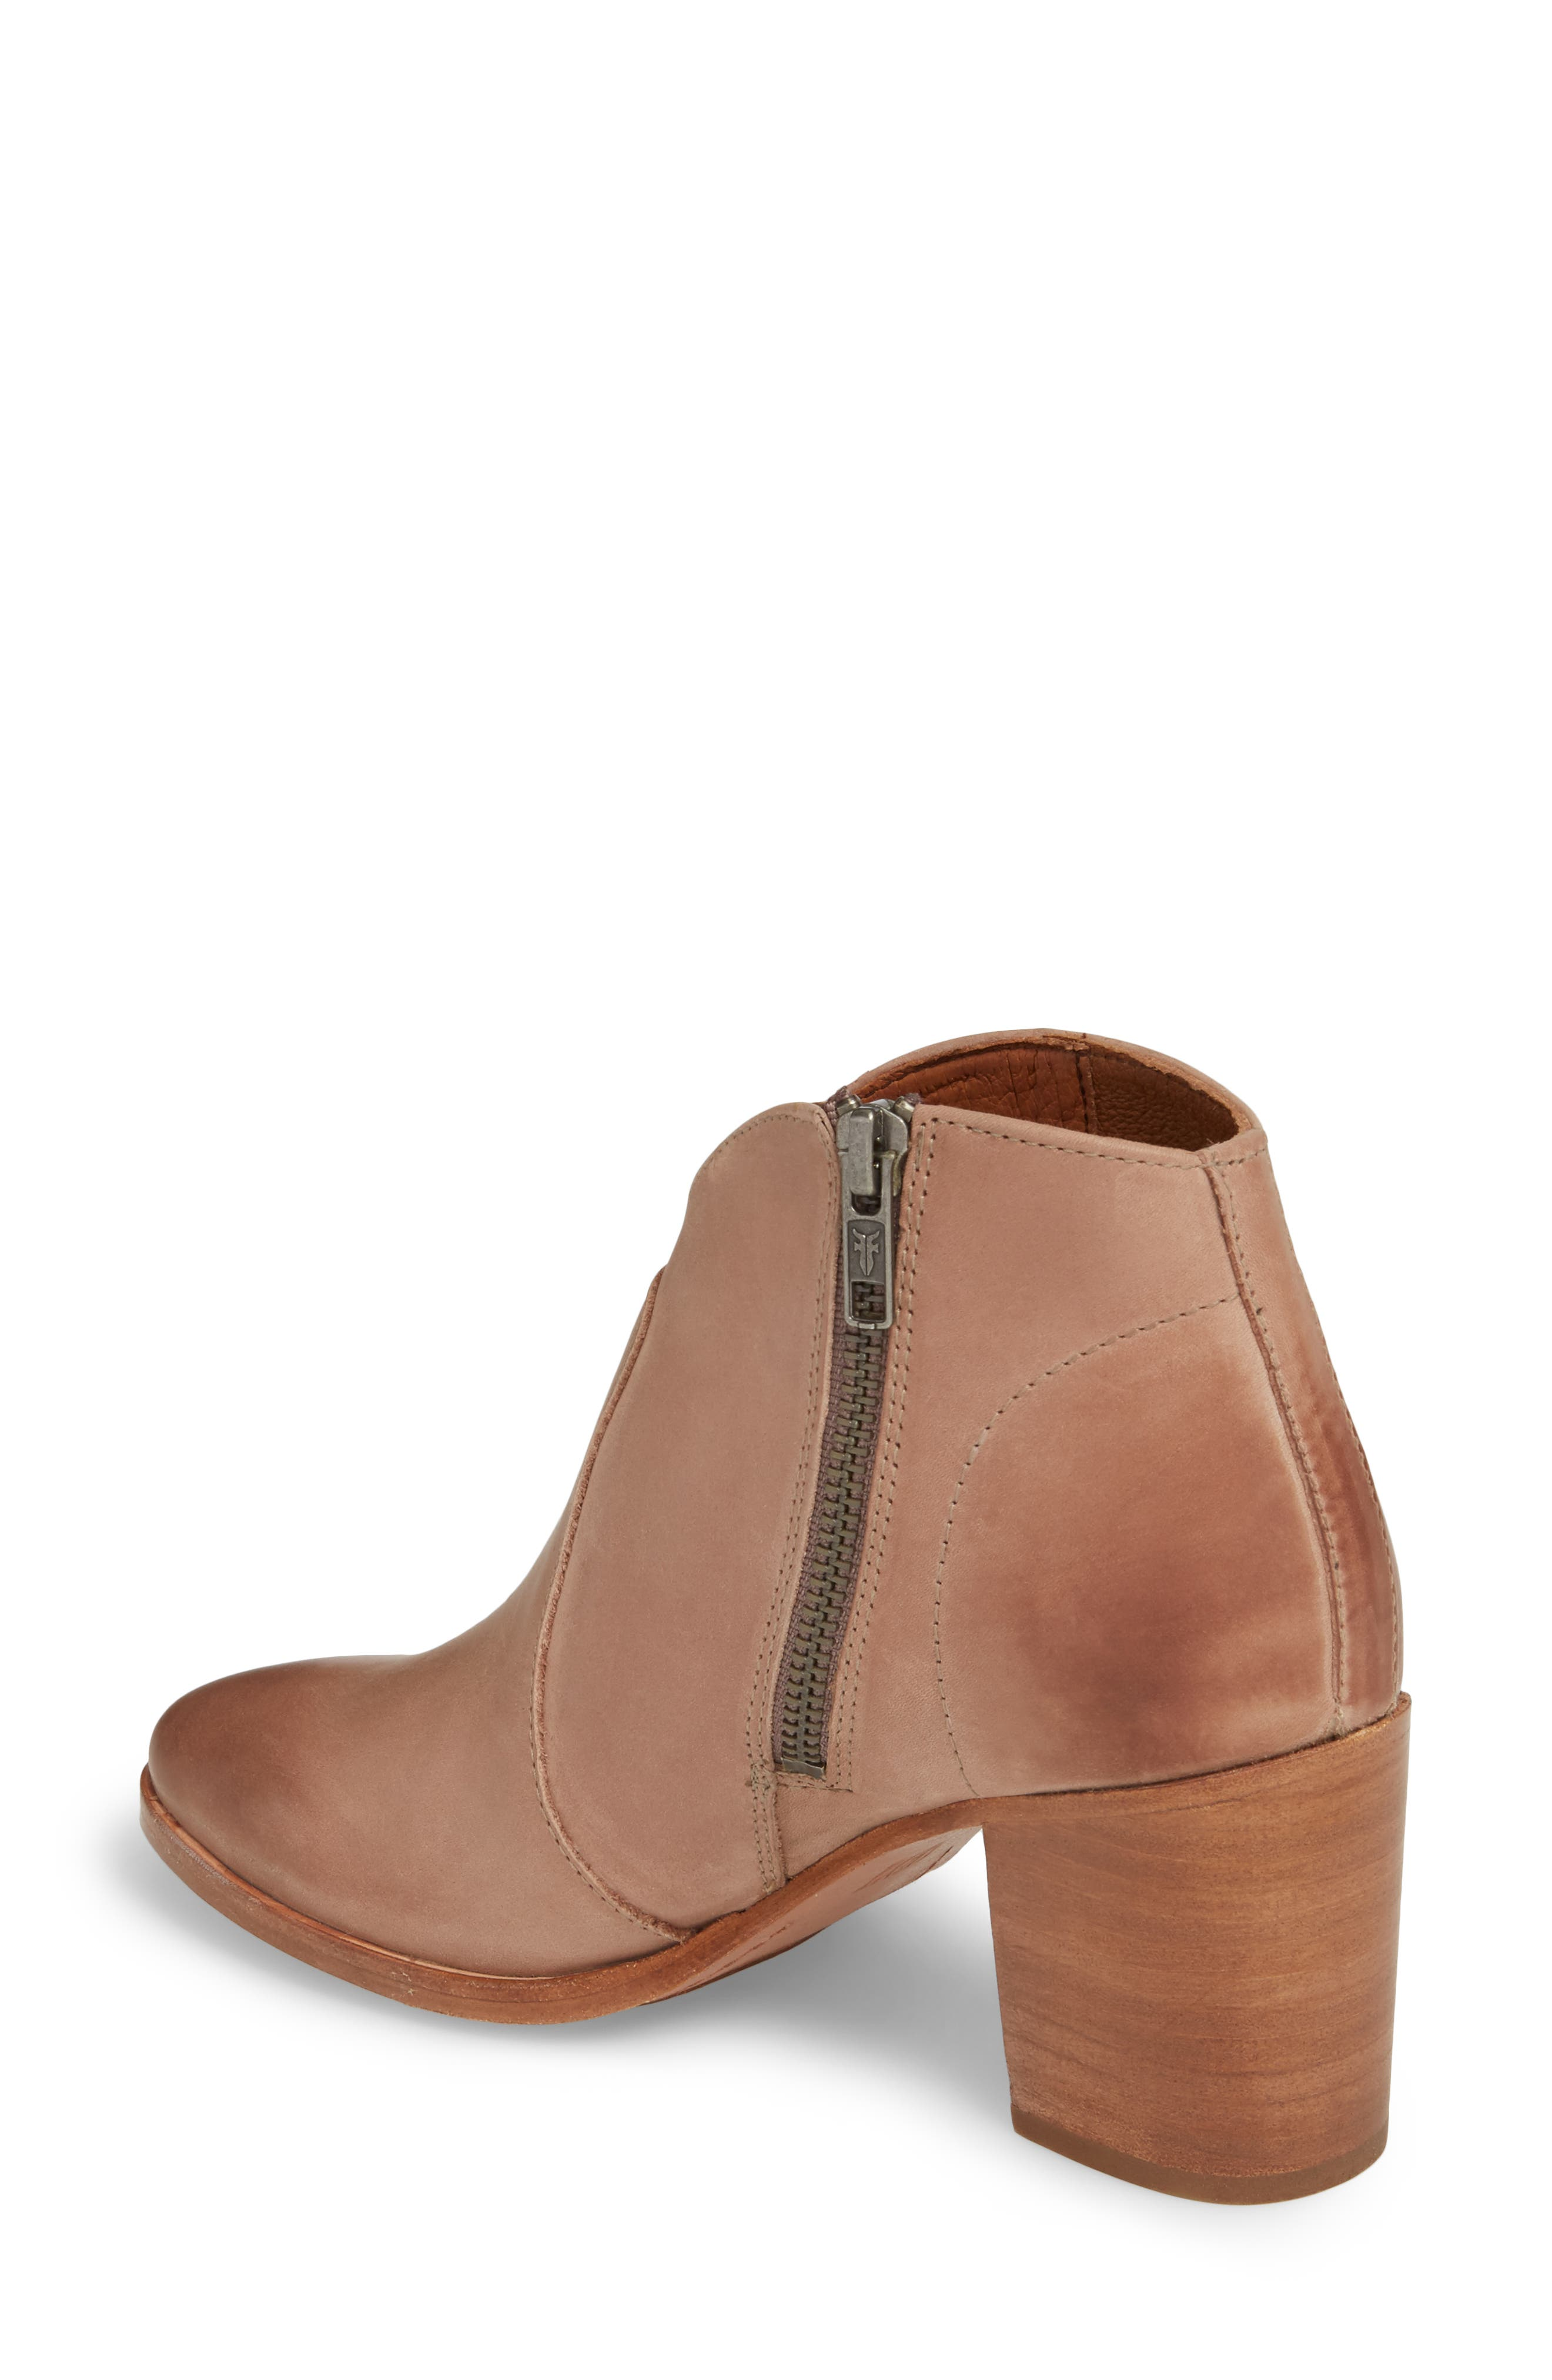 Nora Zip Bootie,                             Alternate thumbnail 2, color,                             Dusty Rose